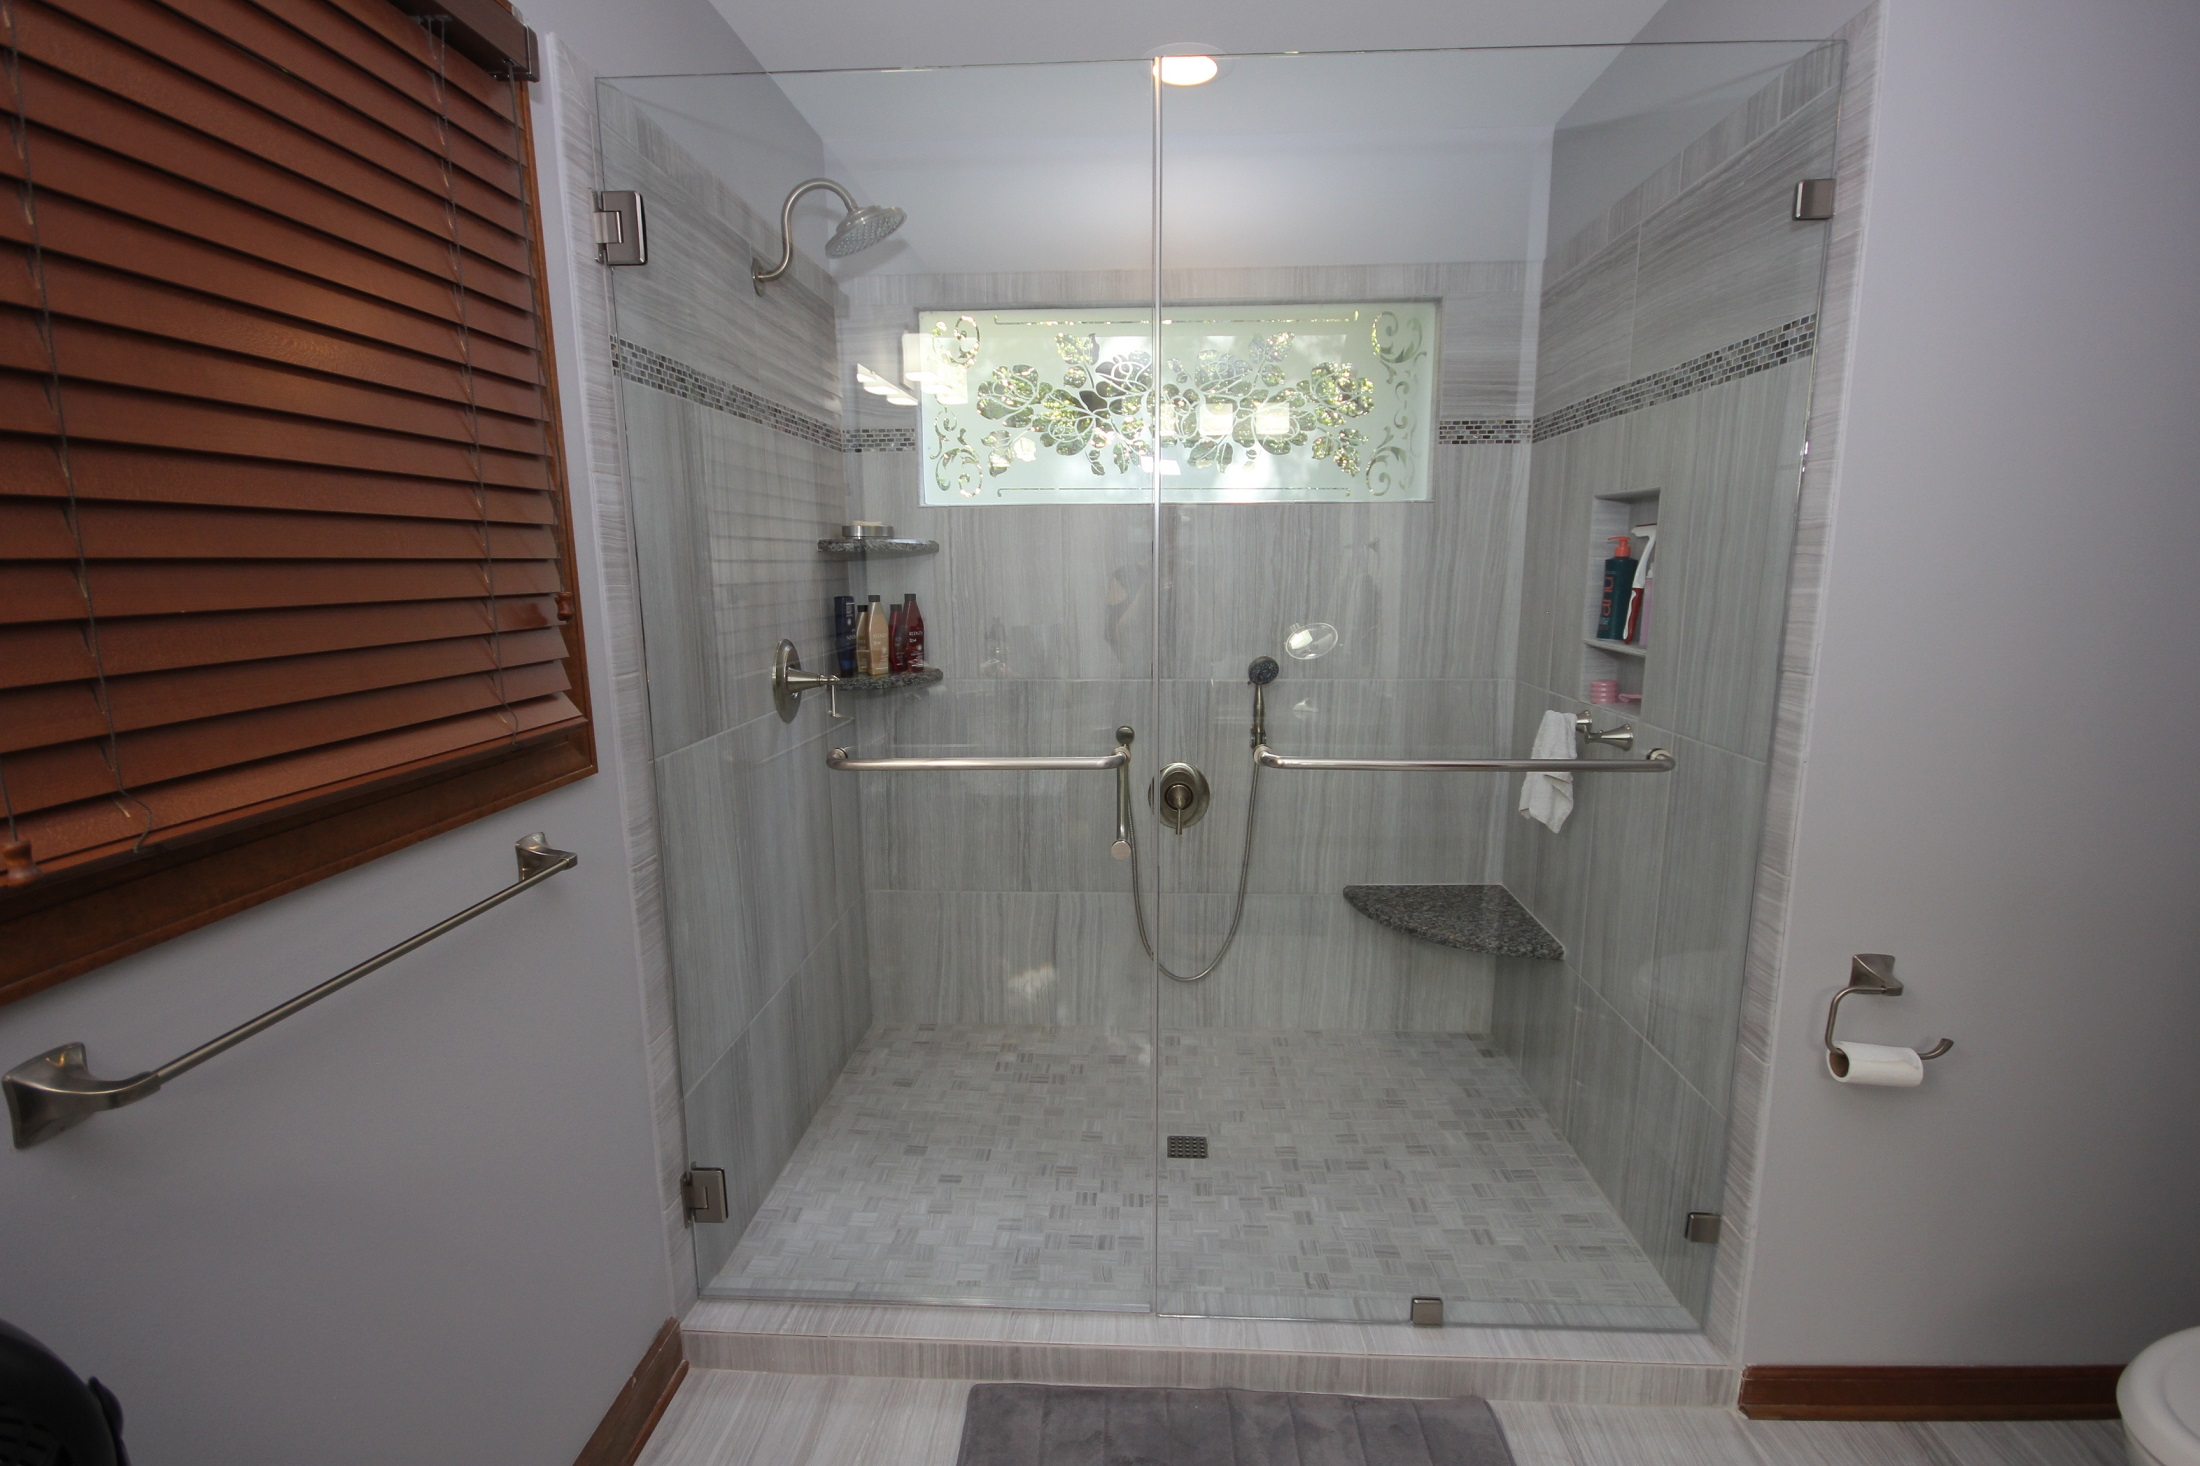 Bathroom Remodeling Cary Nc Design custom designed showers - bath remodeling center cary, nc